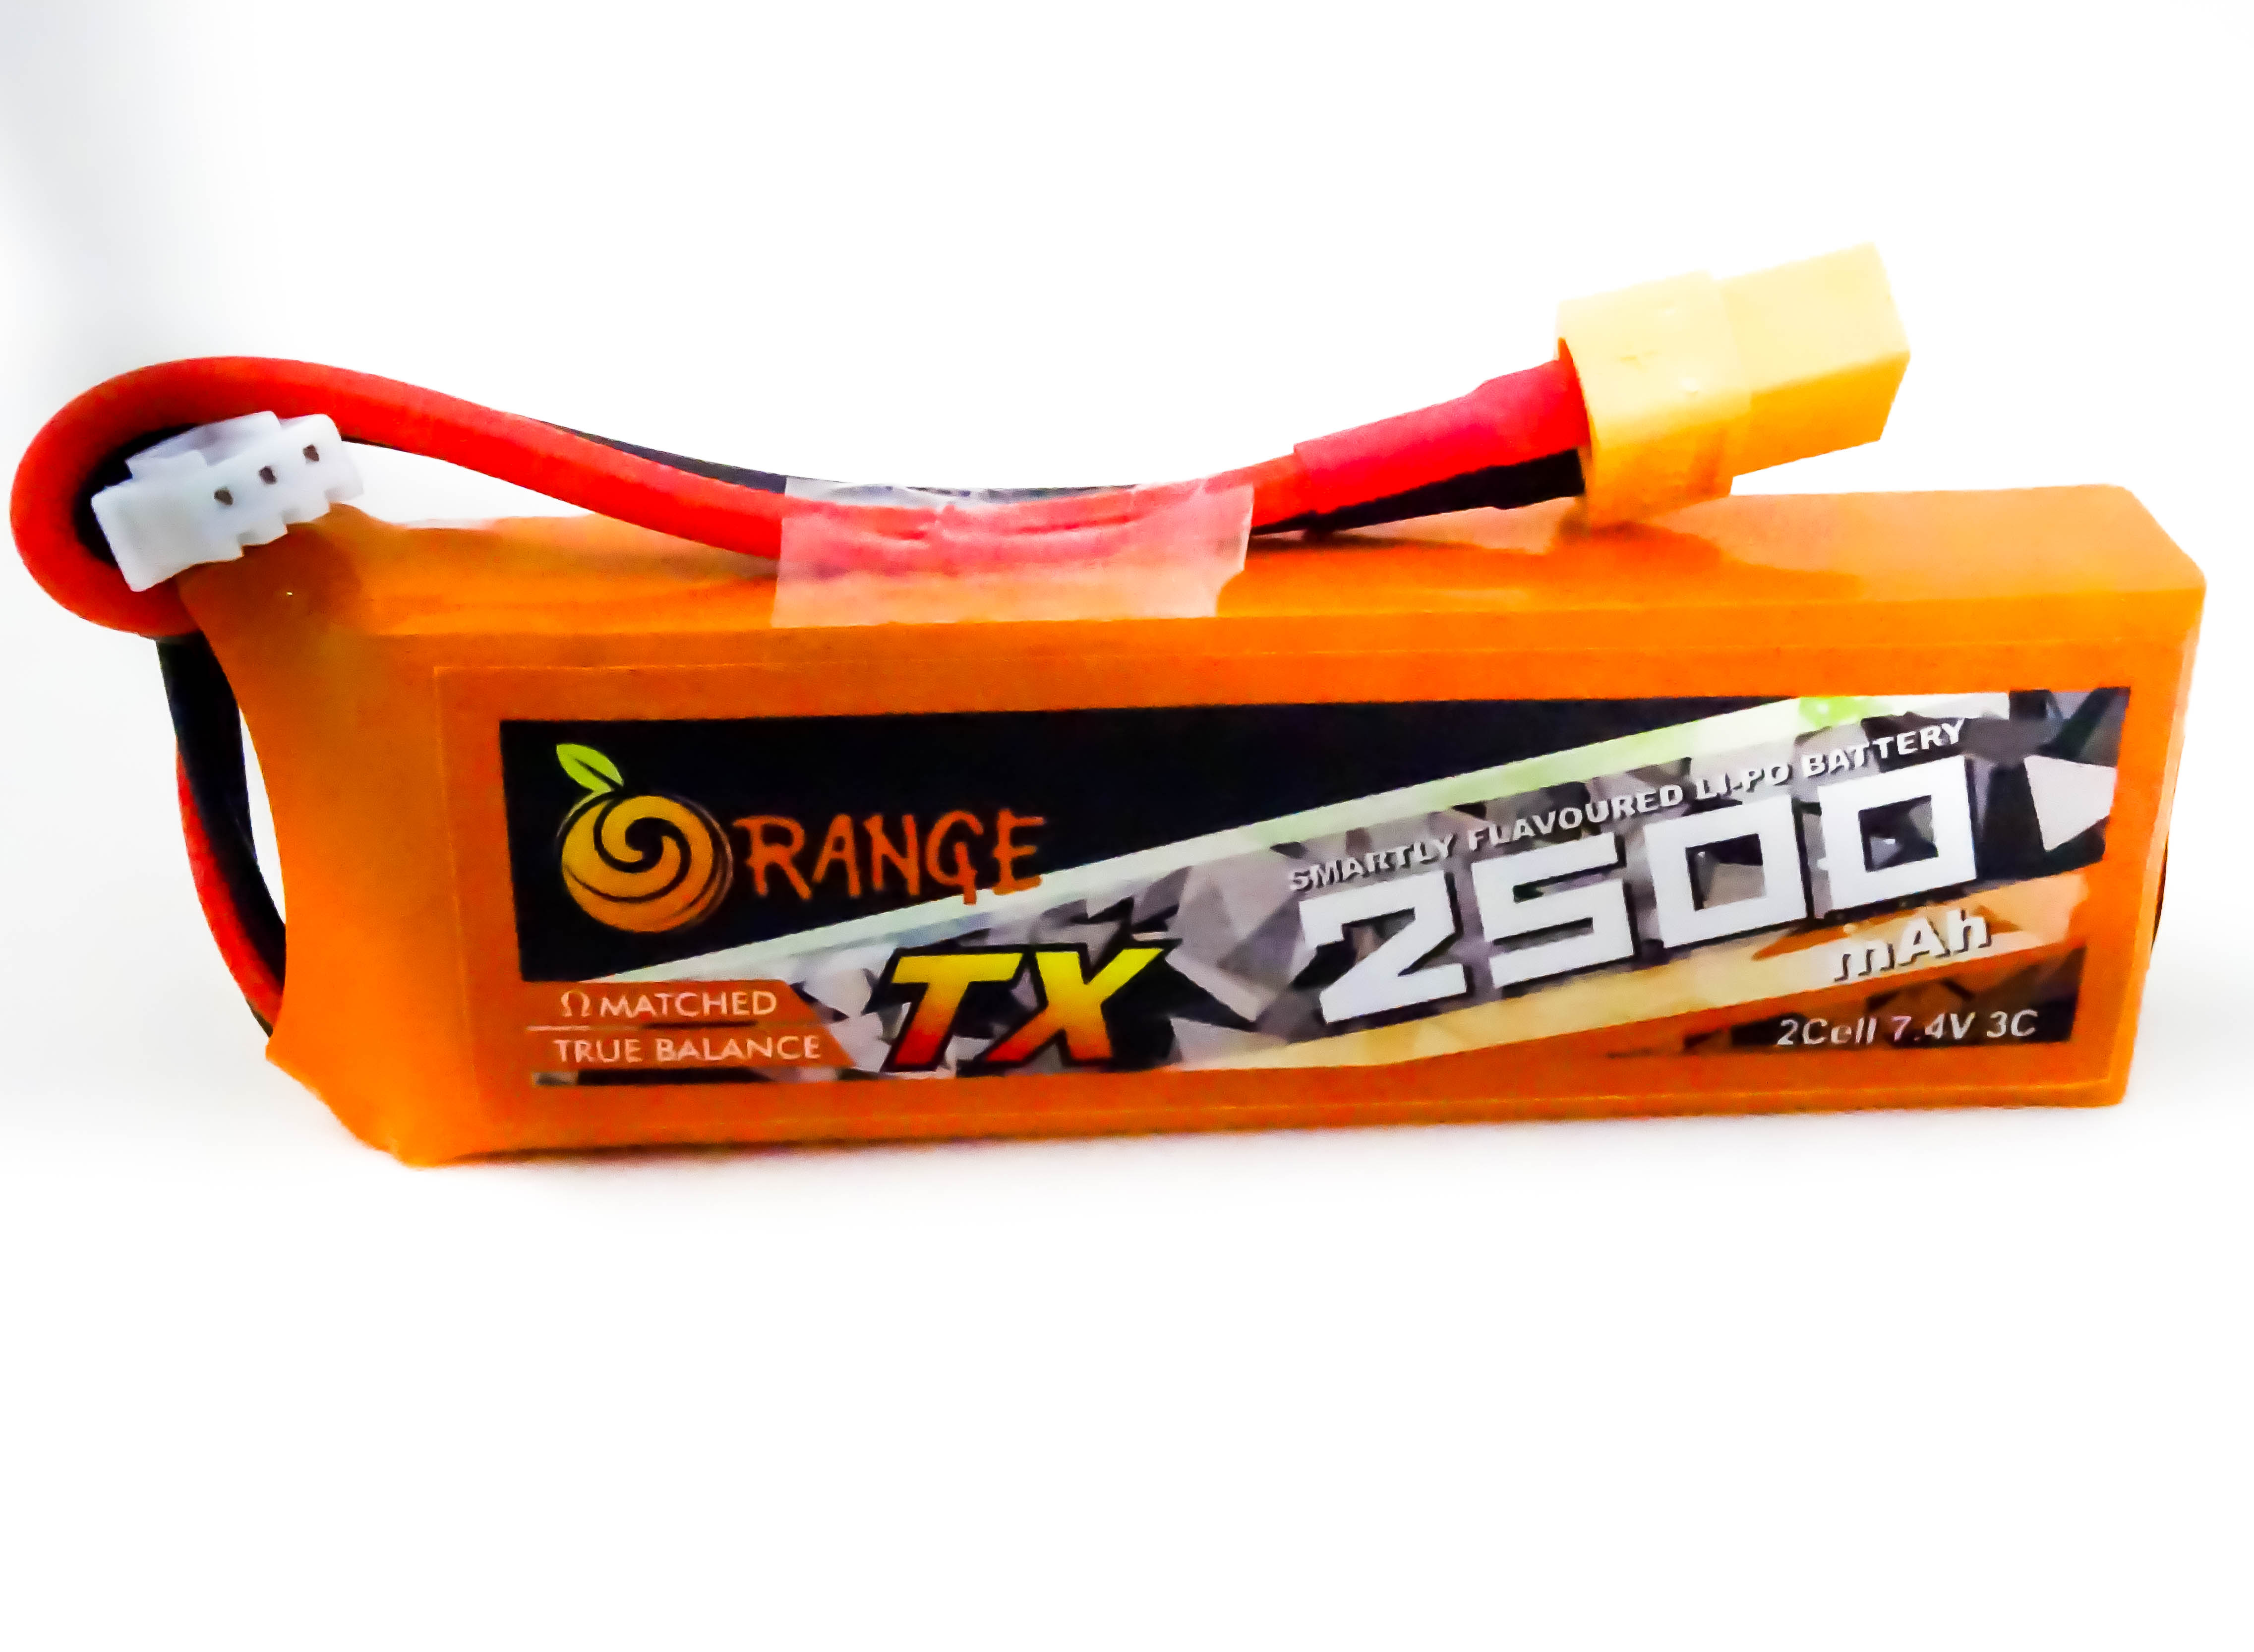 ORANGE TRANSMITTER (TX) 2500MAH 2S 3C (7.4V) LITHIUM POLYMER BATTERY PACK (LIPO)